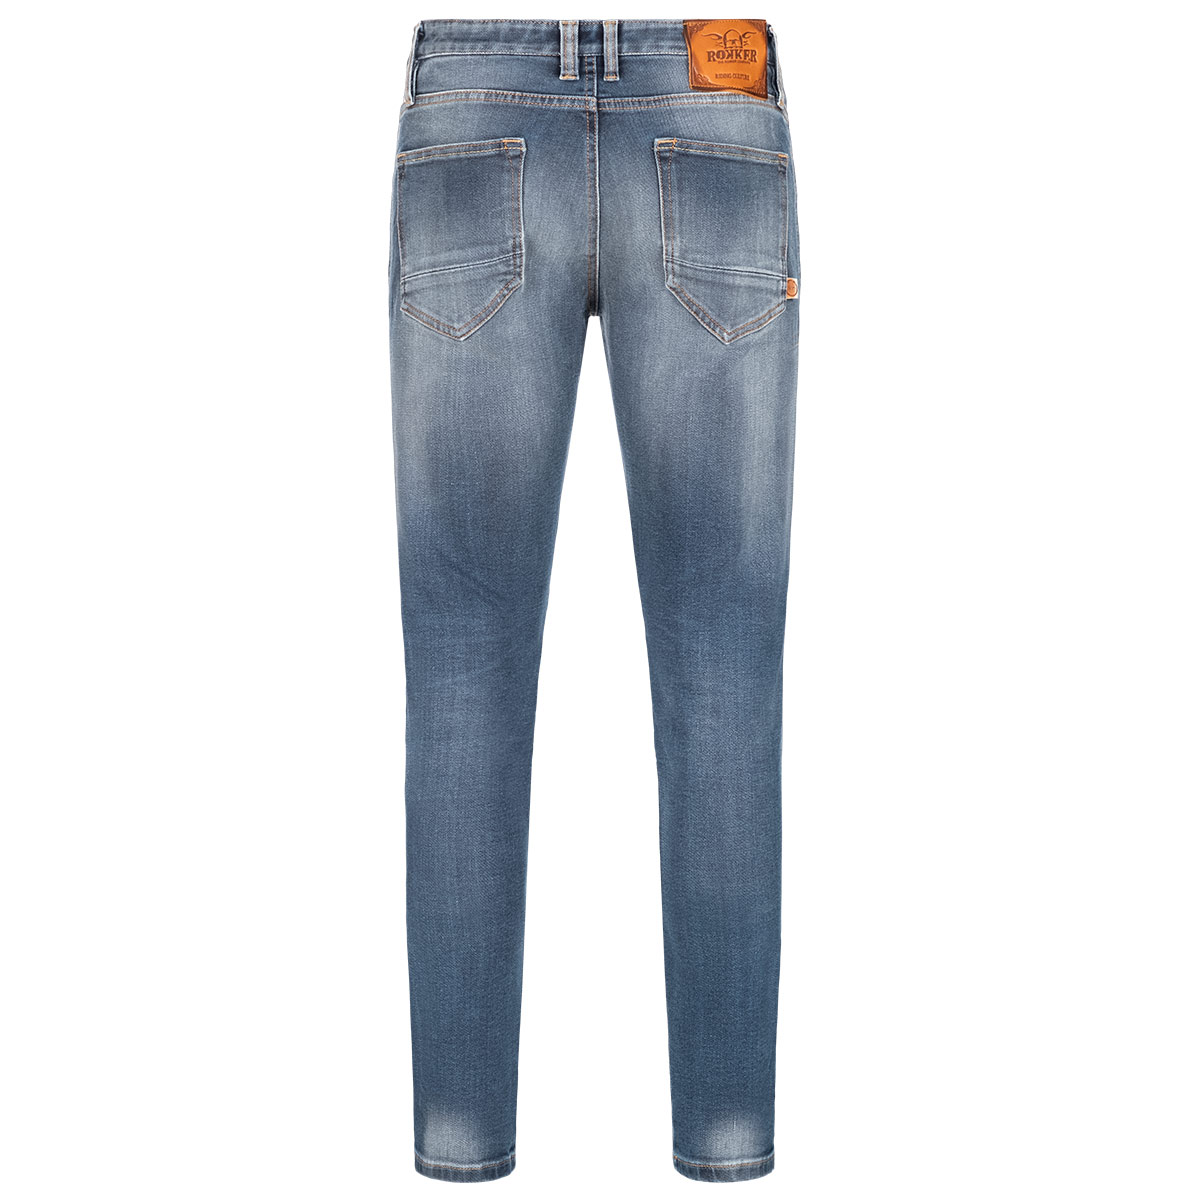 Rokker Rokkertech Tapered Slim